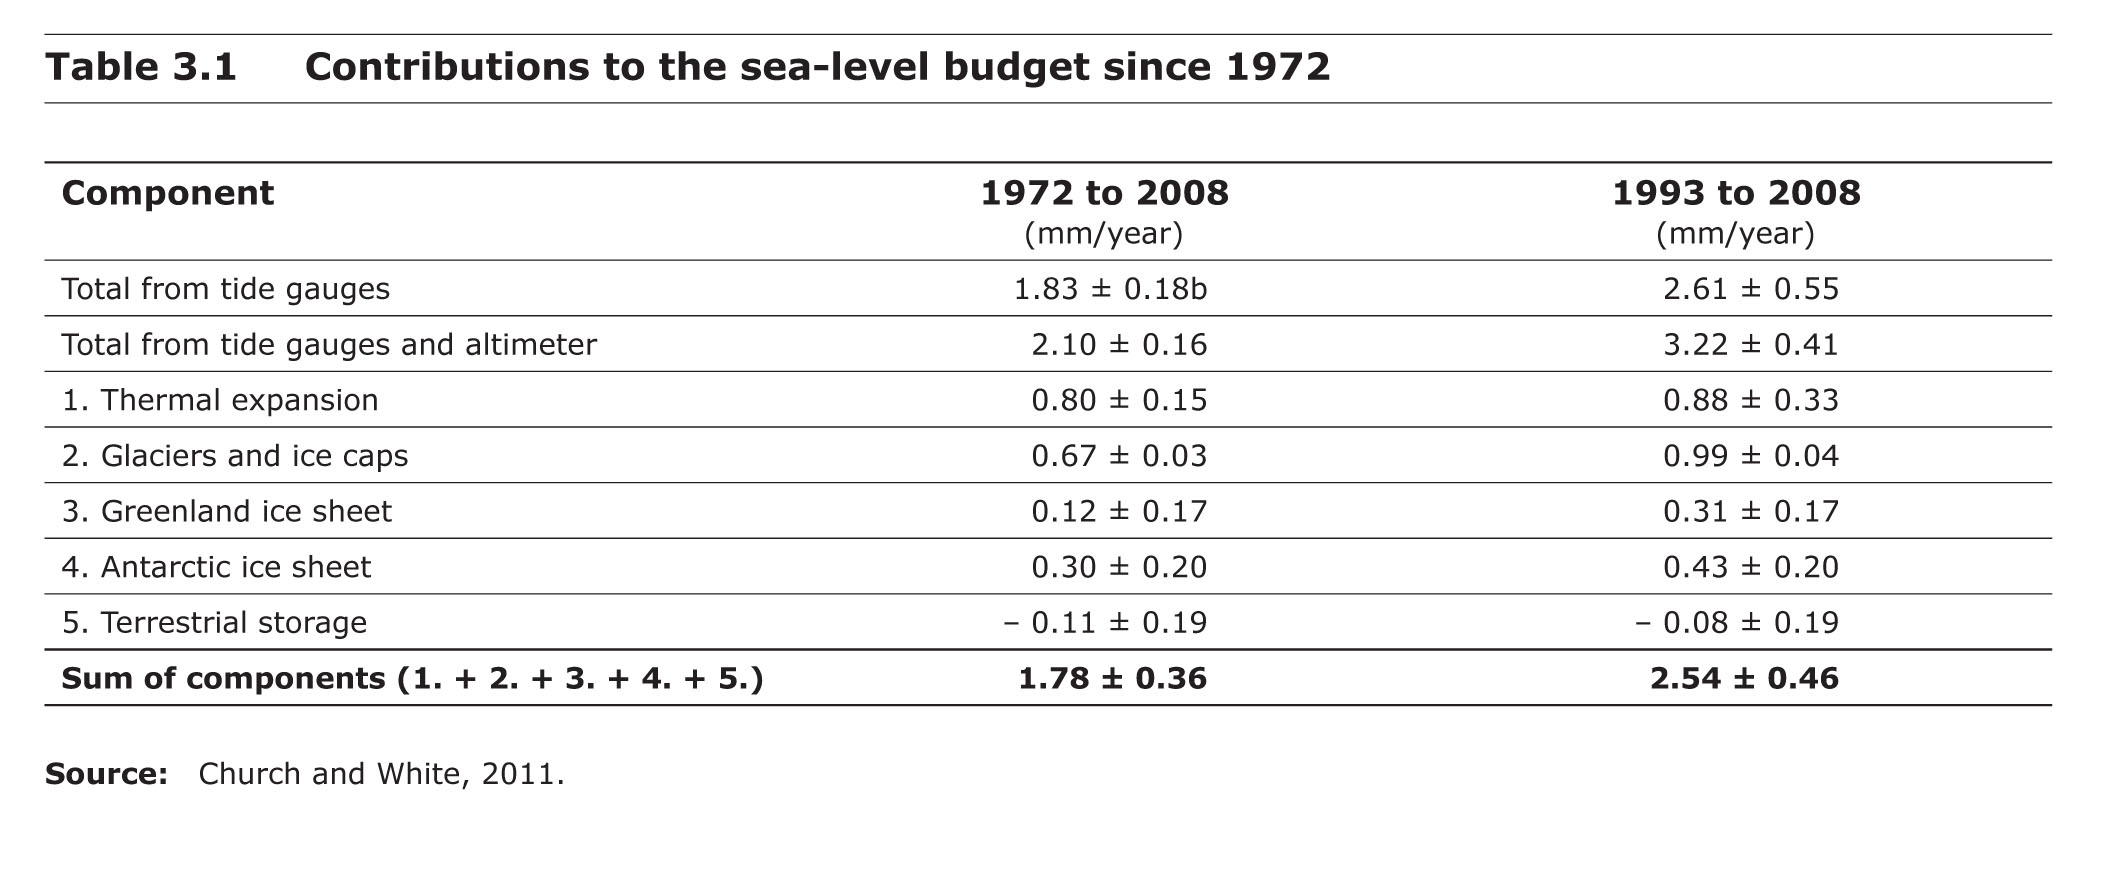 Contributions to the sea level budget since 1972